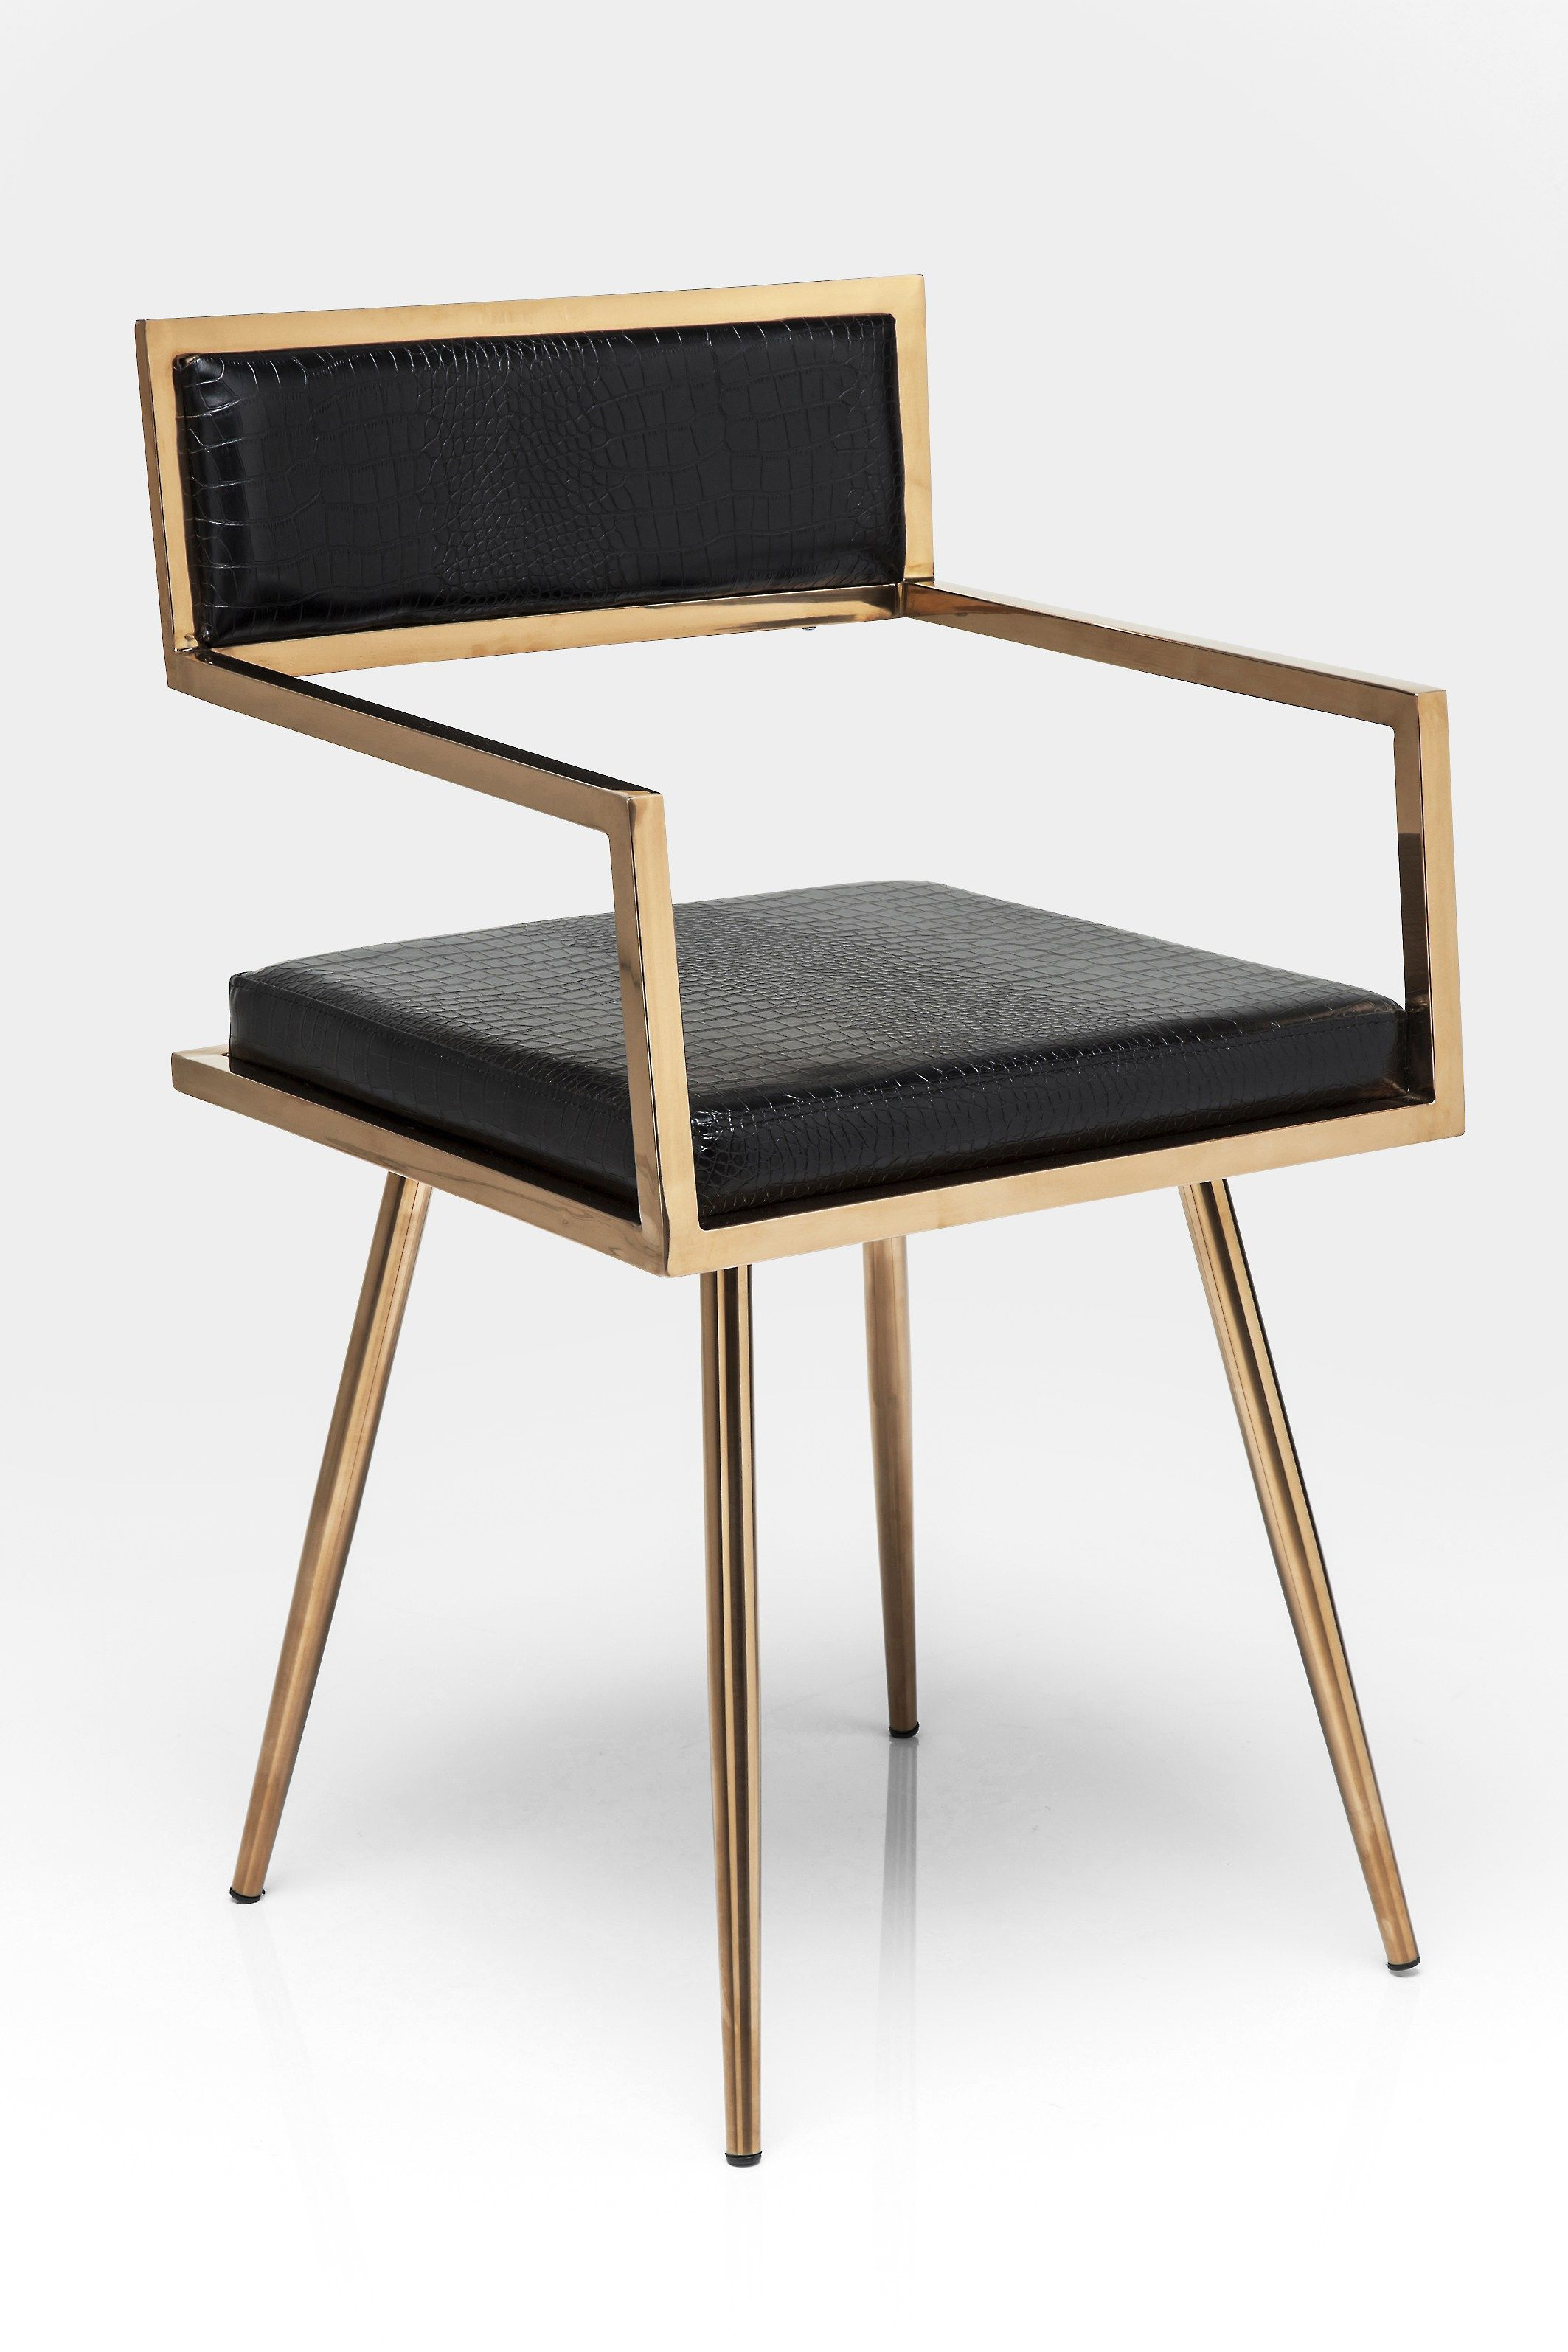 Eames Chair Gepolstert Pin By Esra On Tasarım Pinterest Design Furniture